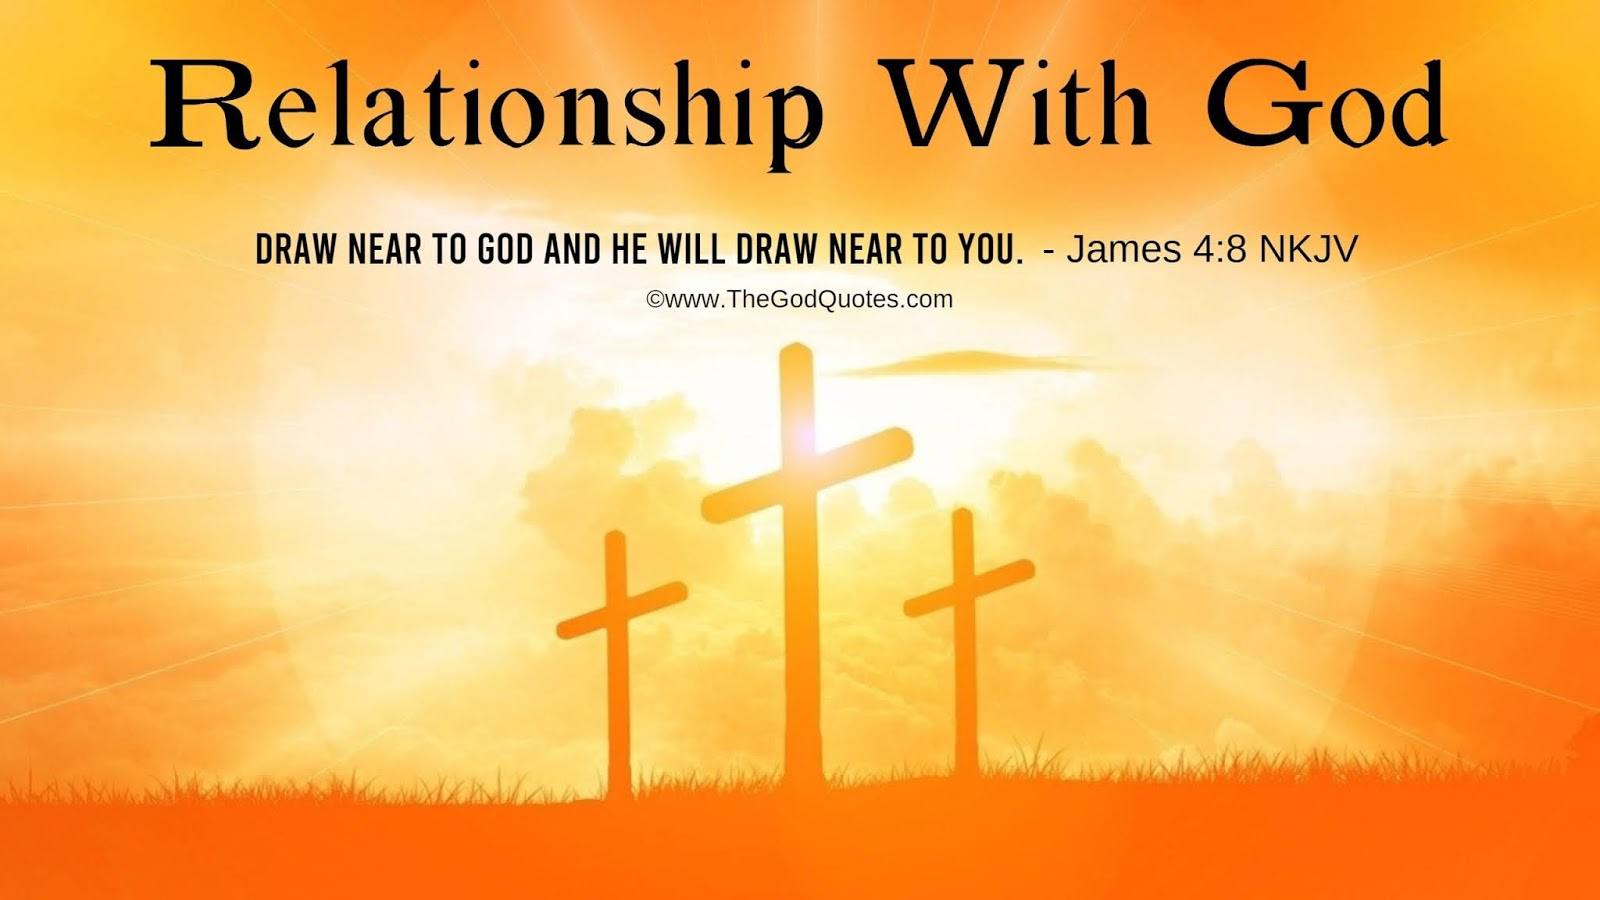 Relationship With God Quotes From The Bible